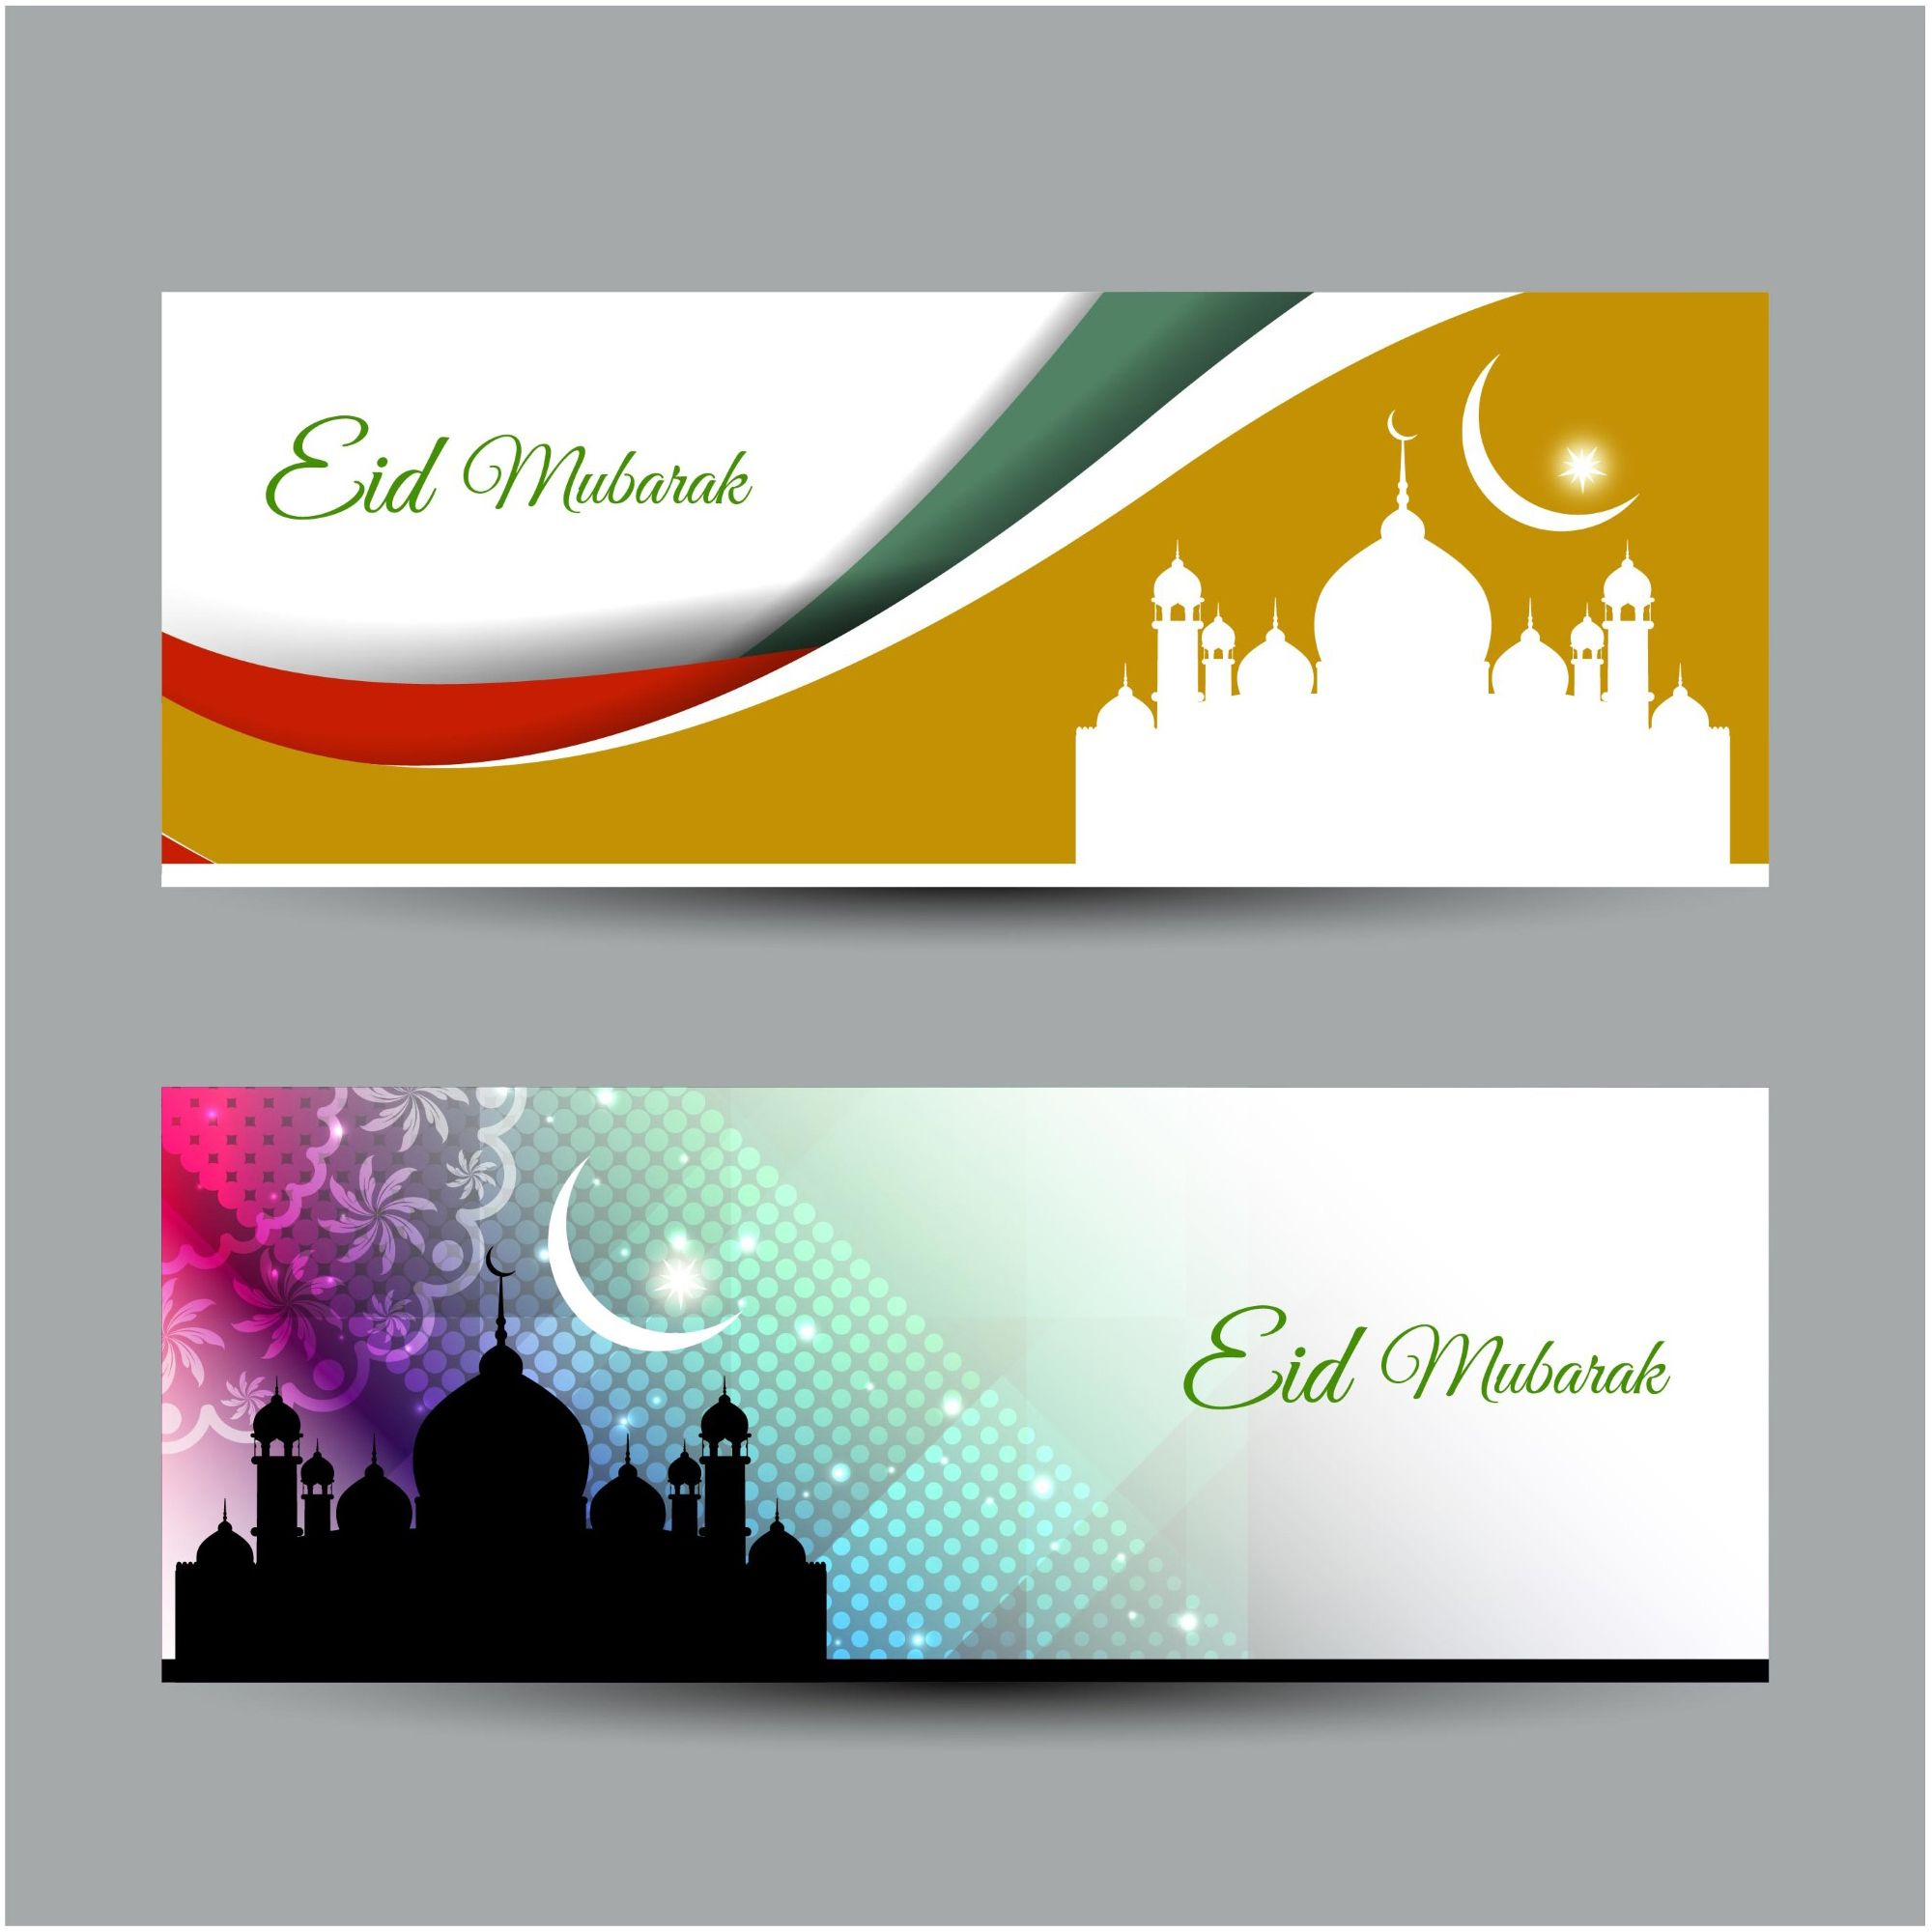 best eid mubarak banners set download free lukisan desain dekorasi best eid mubarak banners set download